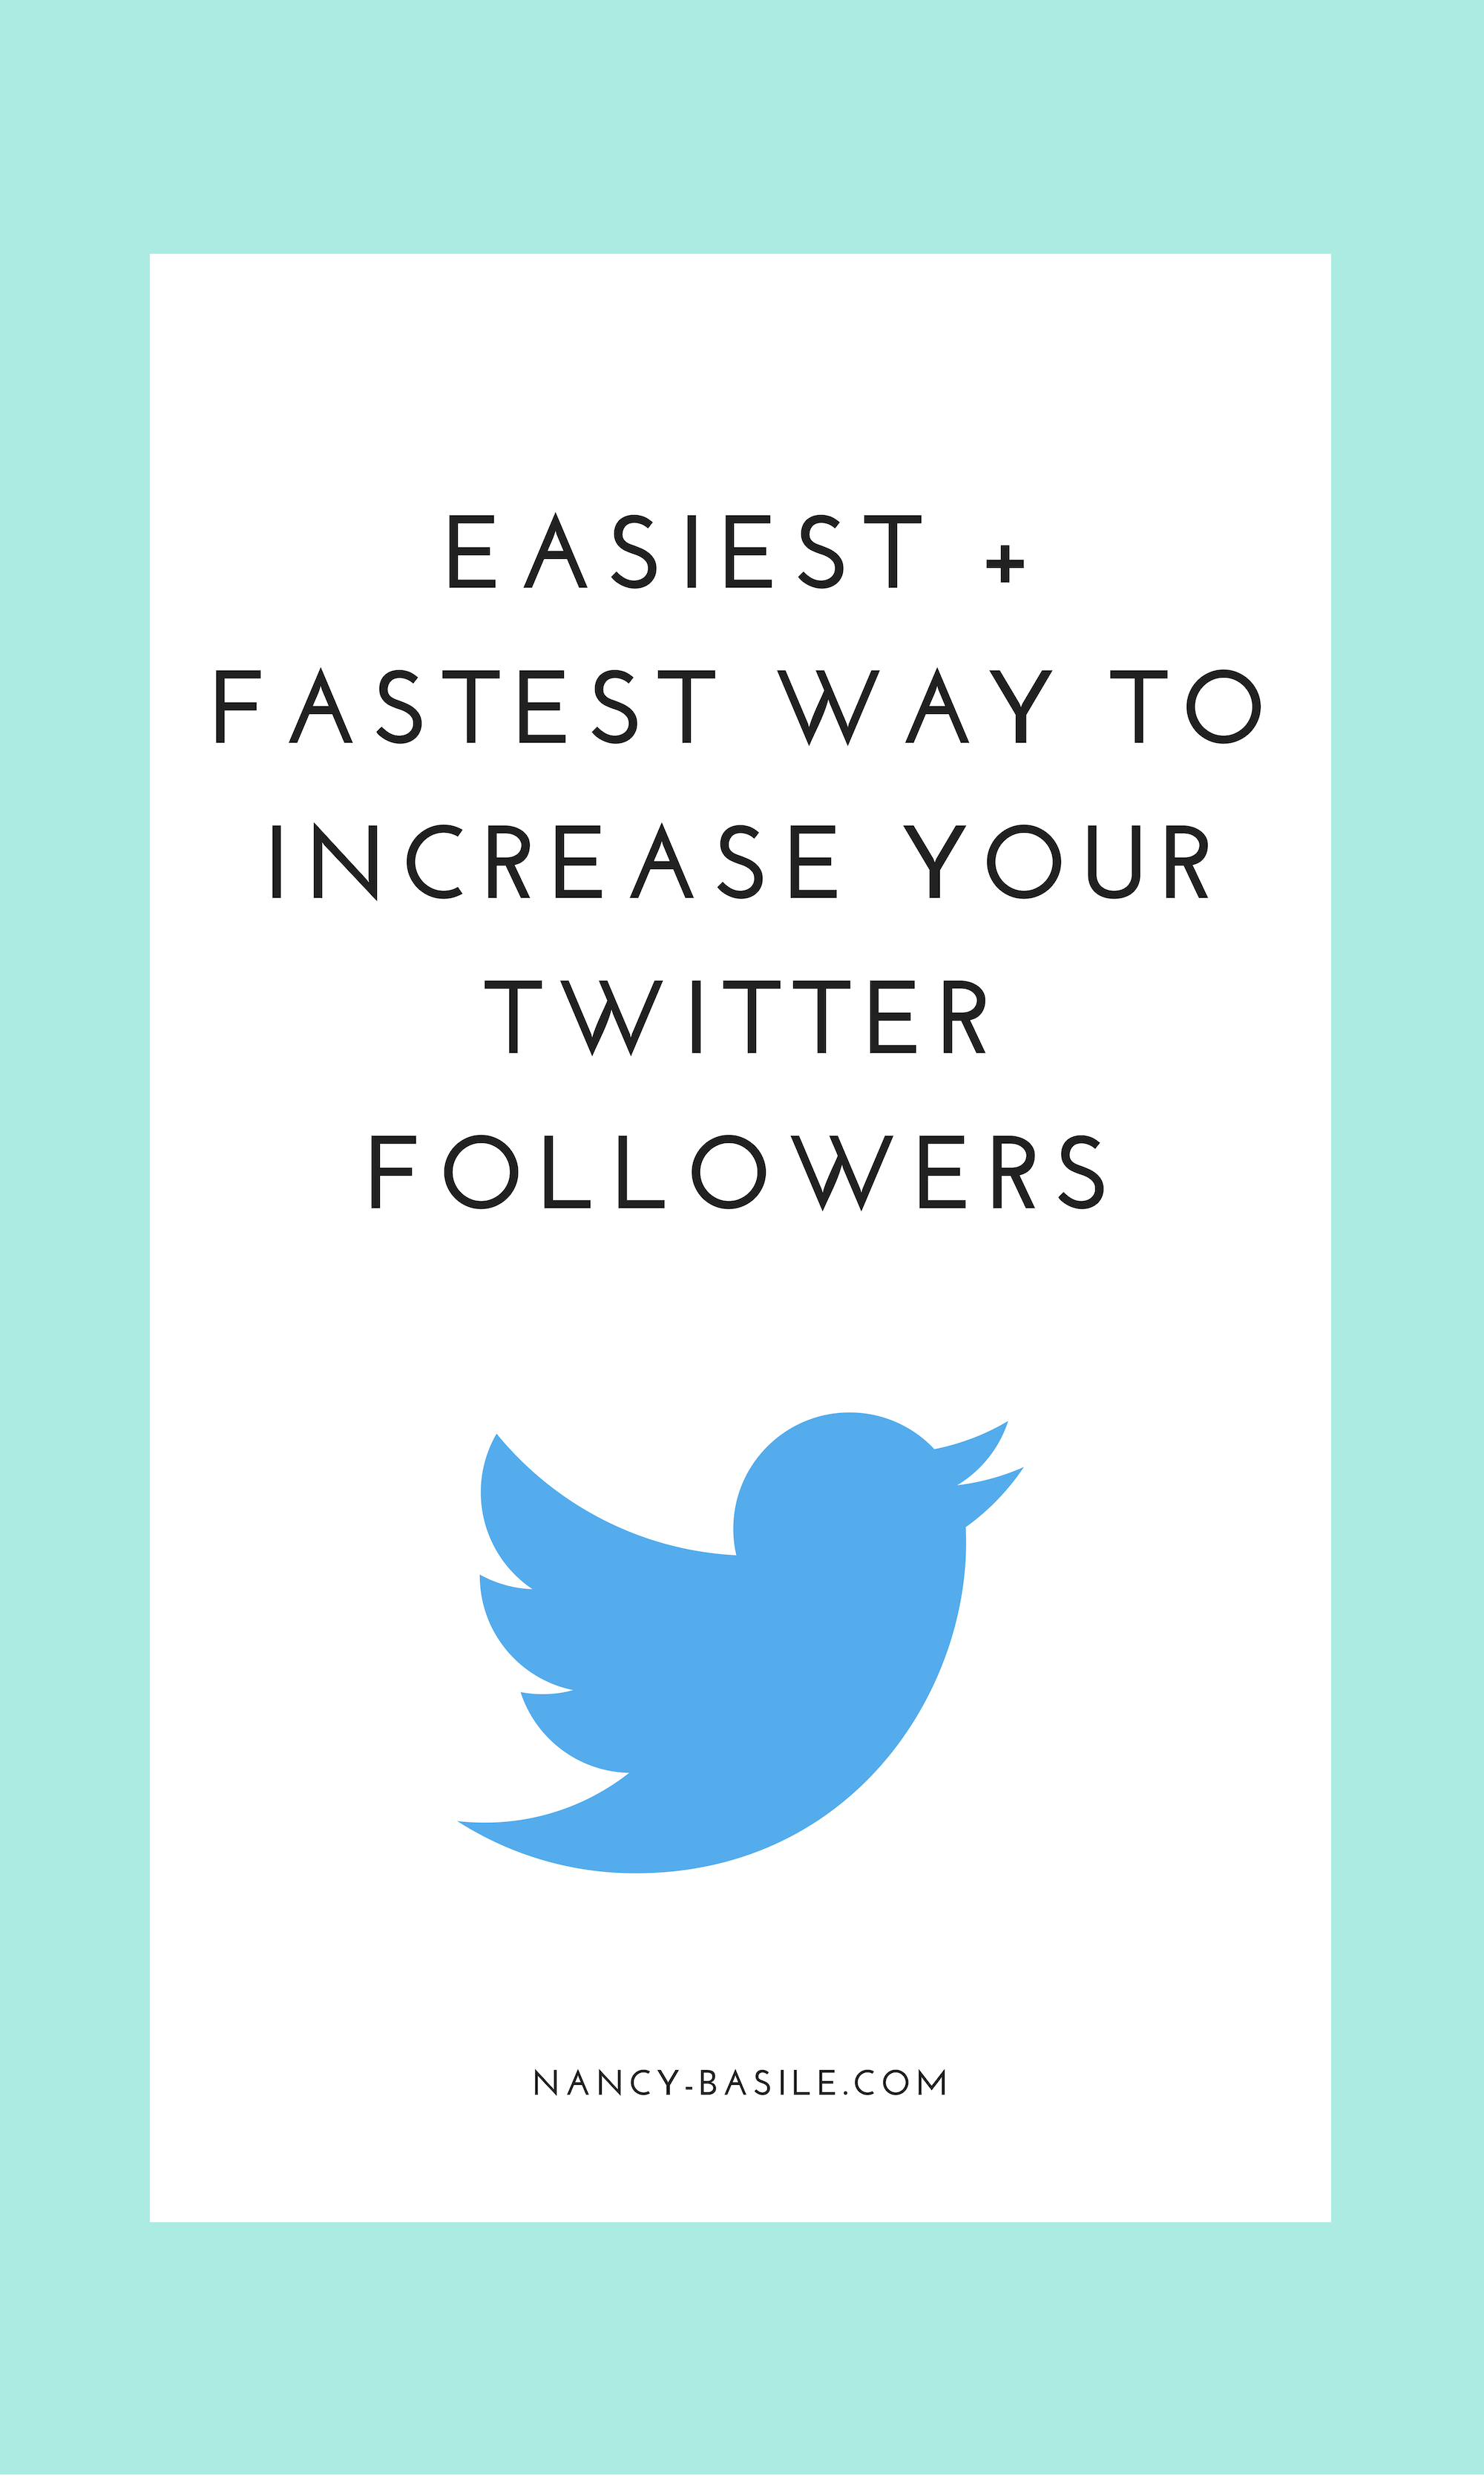 Easiest + Fastest Way to Increase Your Twitter Followers